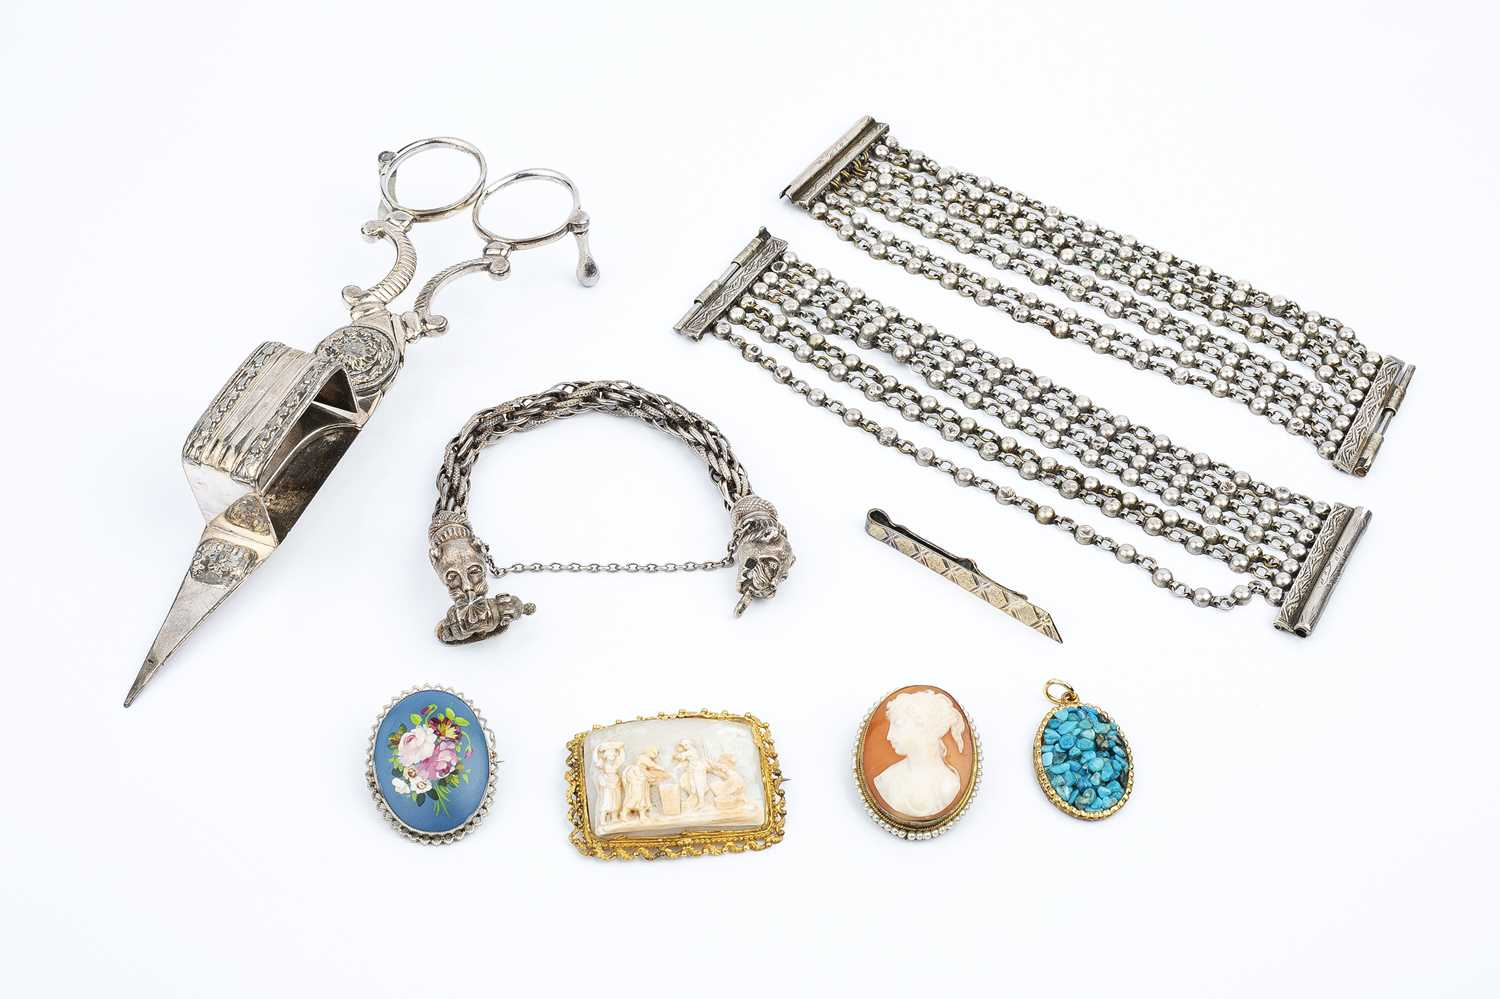 A small collection of jewellery, comprising a rectangular shell cameo brooch/buckle, an Eastern